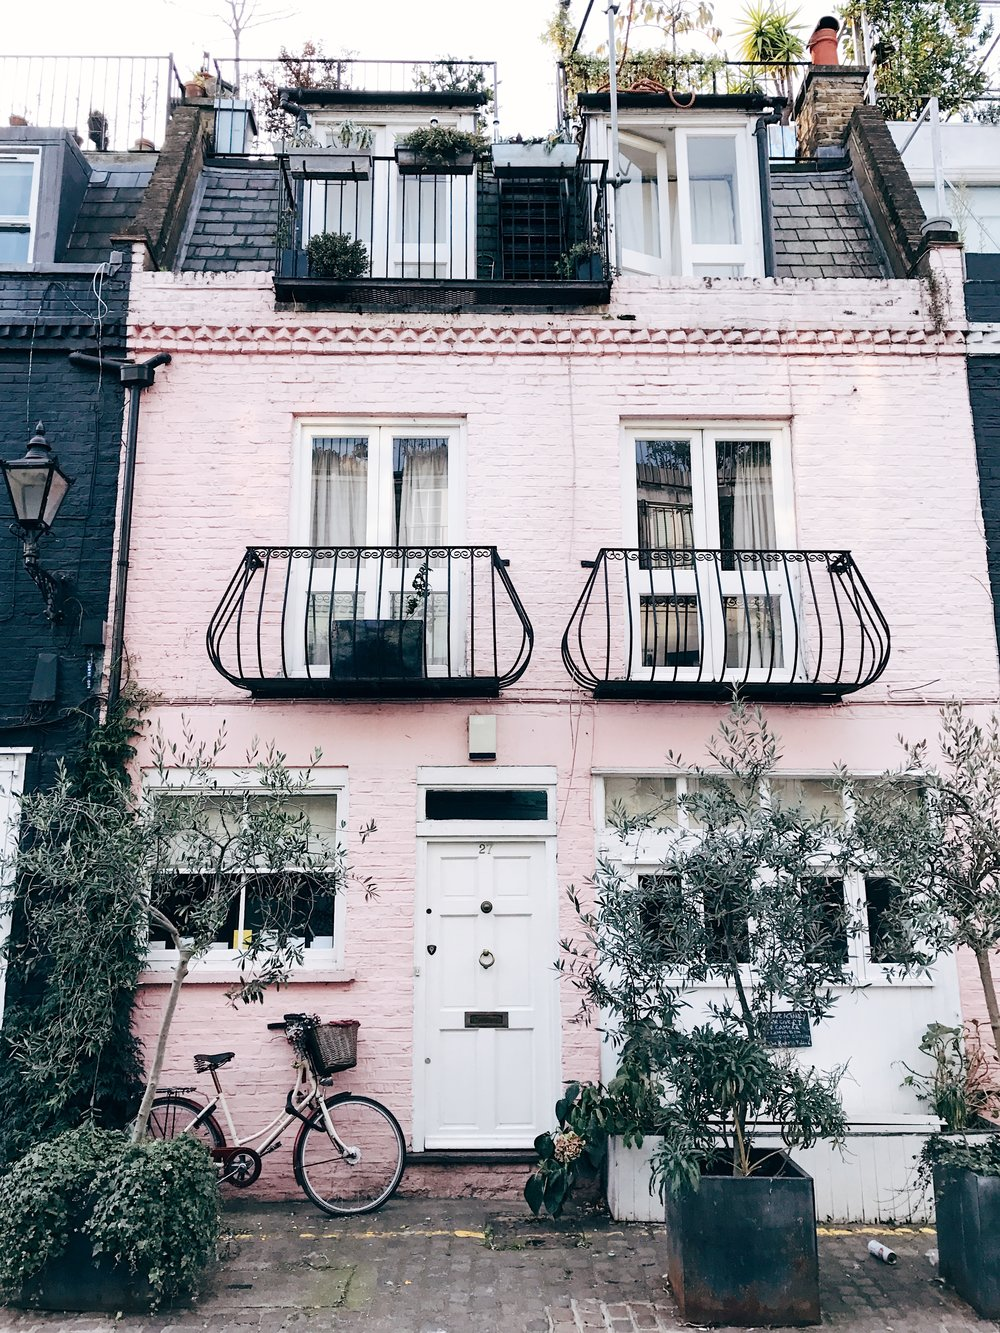 Image: Reasons to Visit London - Many Images to Inspire You to Visit London - Notting Hill